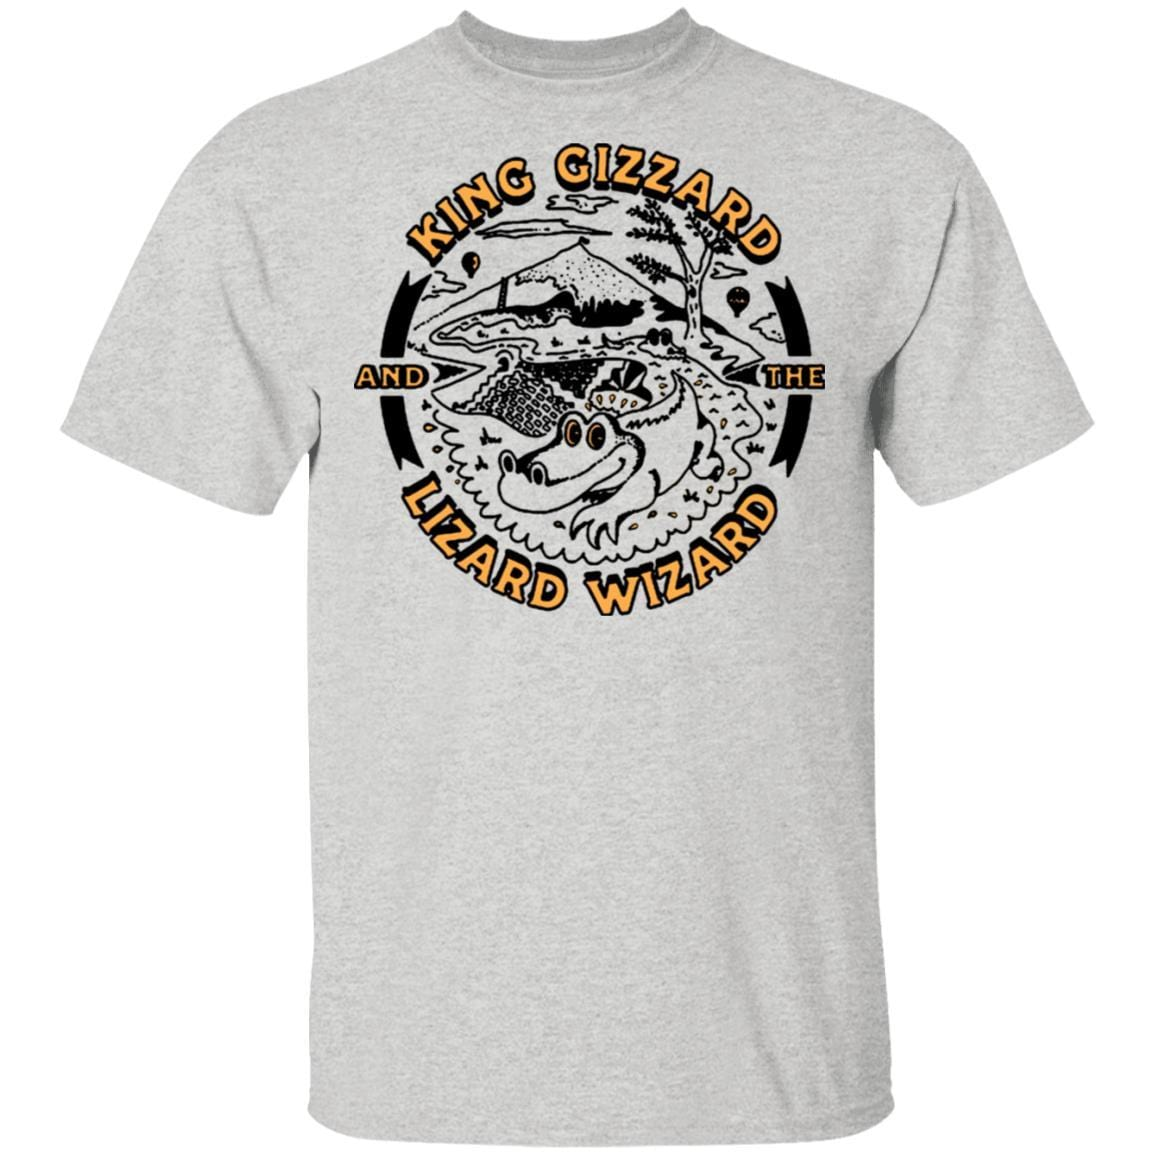 King Gizzard And The Lizard Wizard Gators Vintage T-Shirts, Hoodies 1049-9952-88477983-48184 - Tee Ript